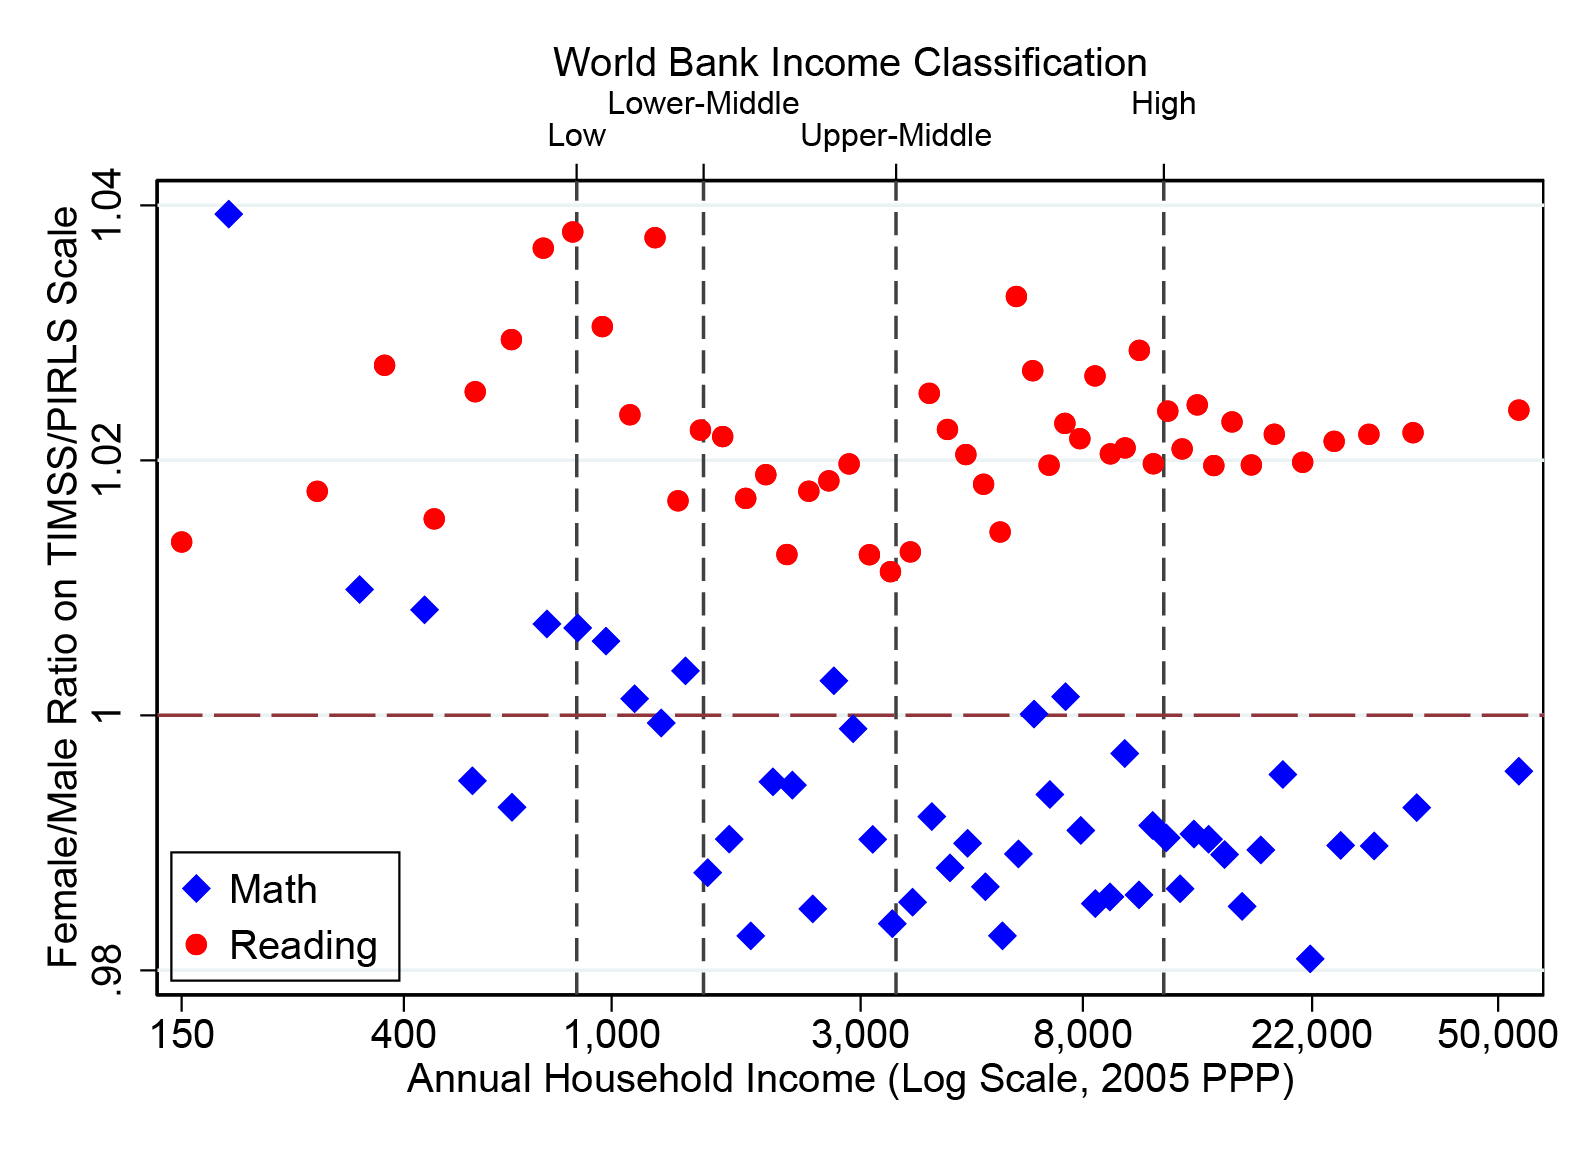 Scatter plot comparing female/male ratio on math and reading scores vs. household income. Girls do better than boys at reading in nearly all countries, but are generally lower in math except in countries below the World Bank's lower-middle income line